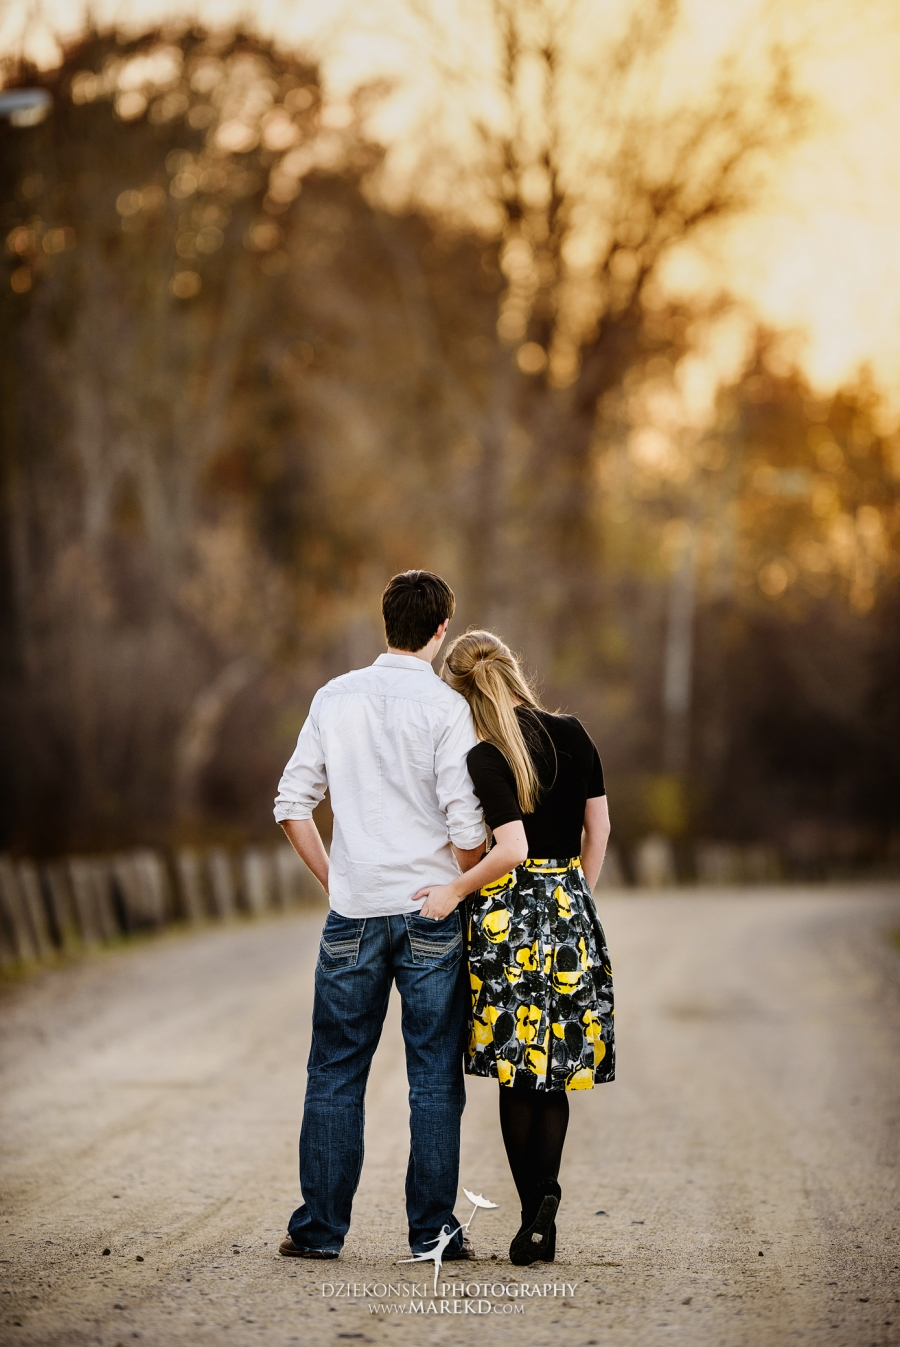 samantha-eric-fall-engagement-session-clarkston-michigan-photographer-metro-detroit-pictures-colors-leaves09